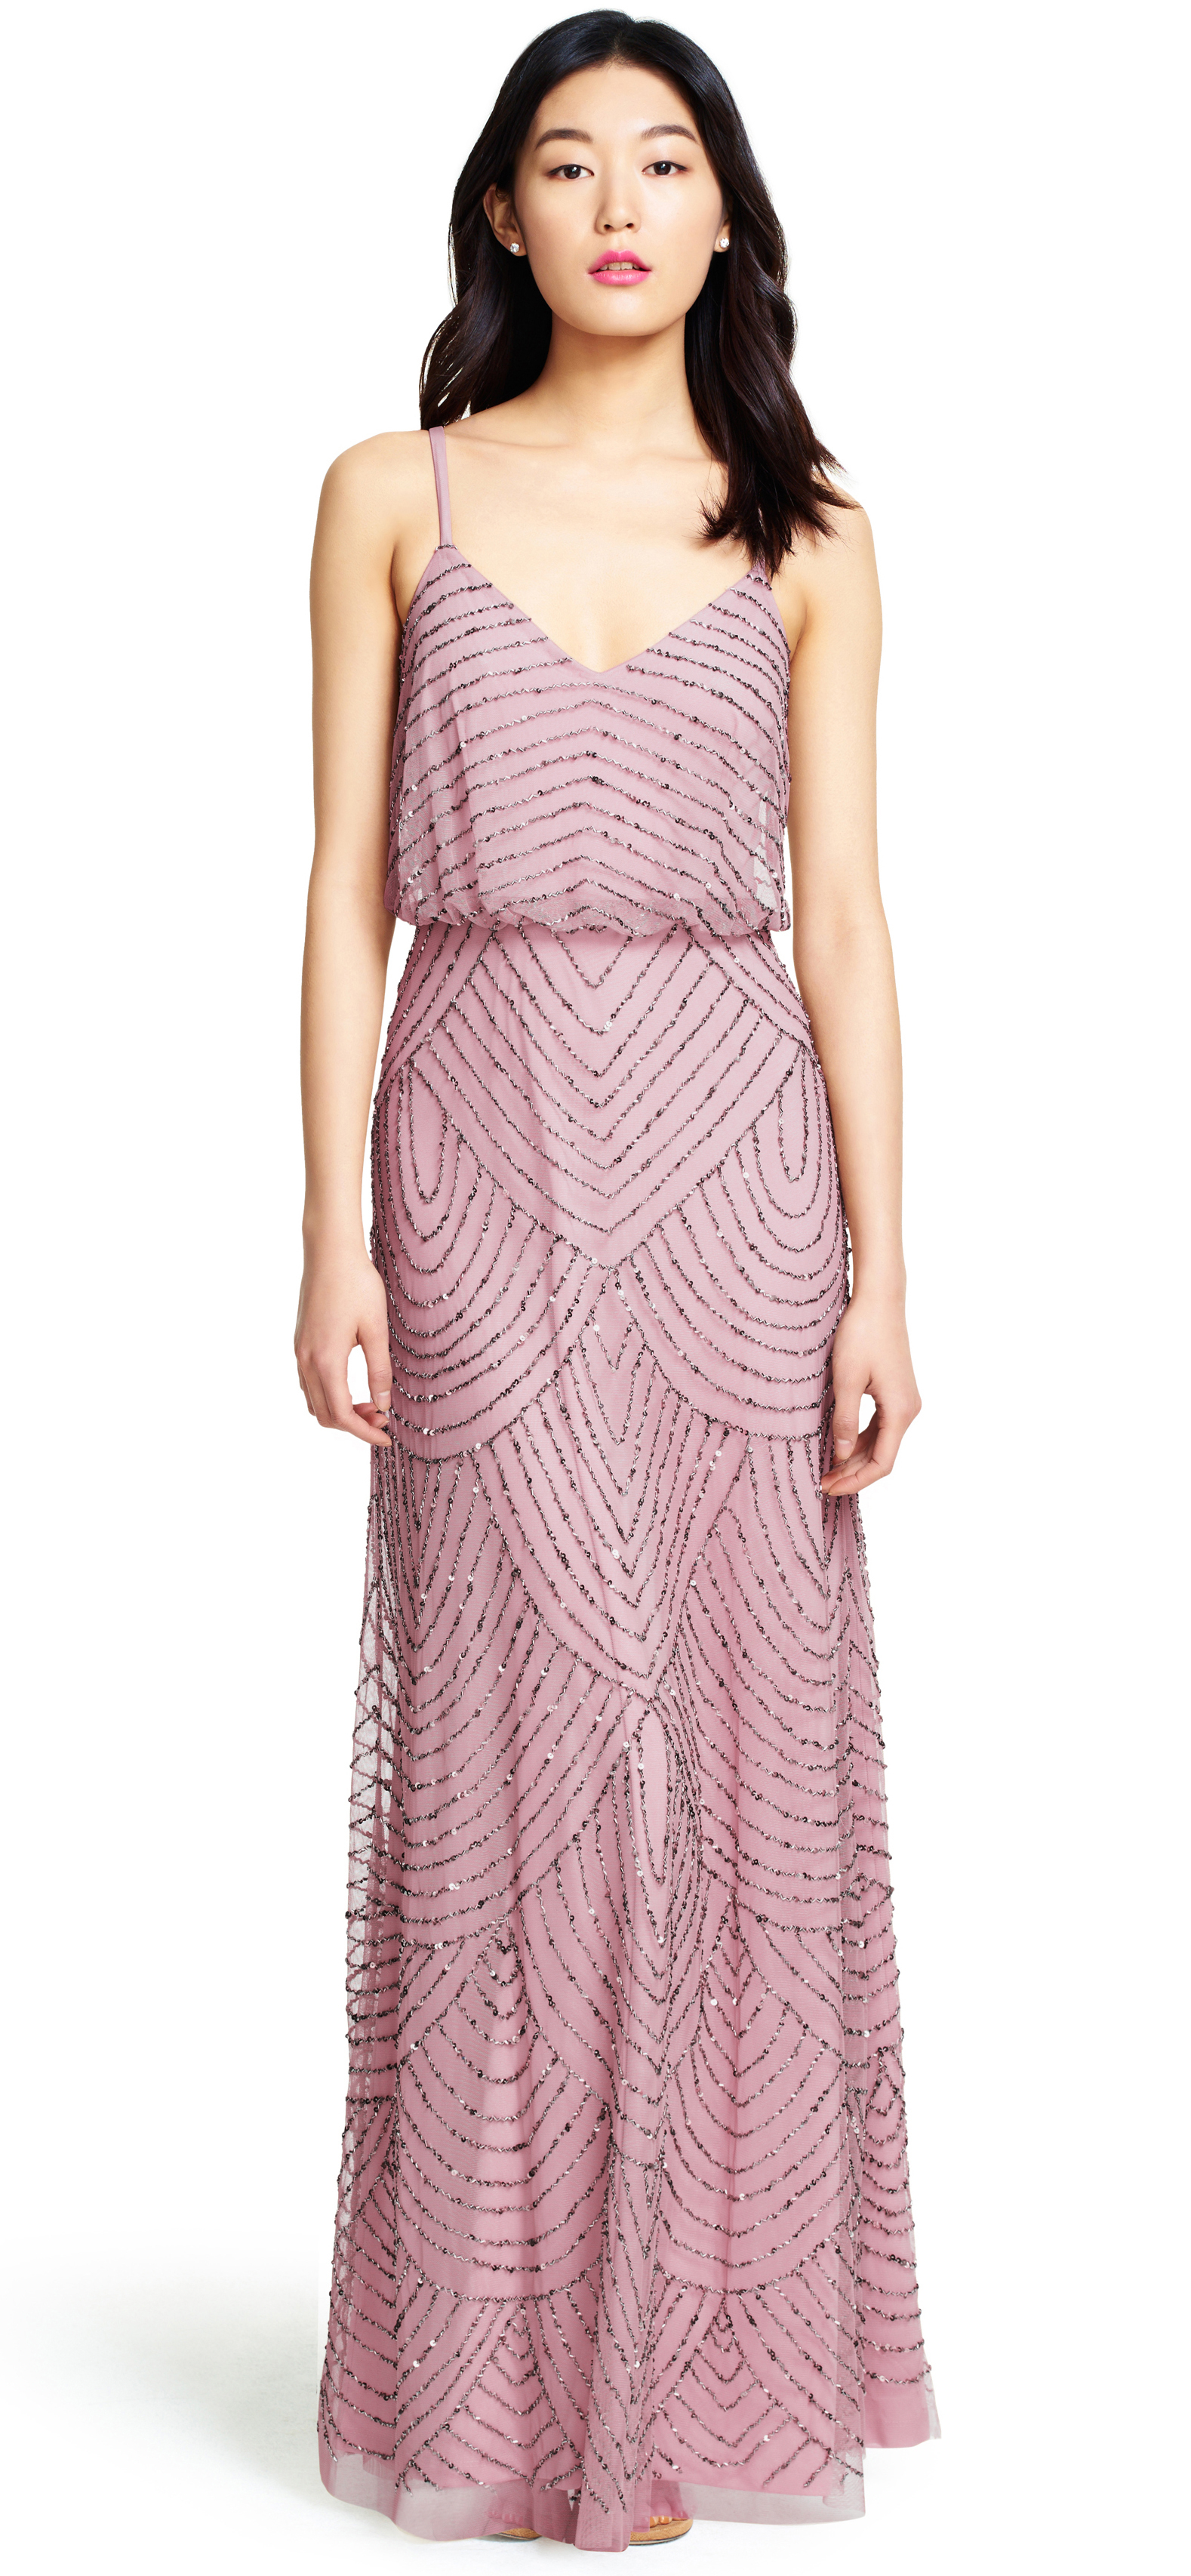 Adrianna Papell Art Deco Beaded Blouson Gown In Natural